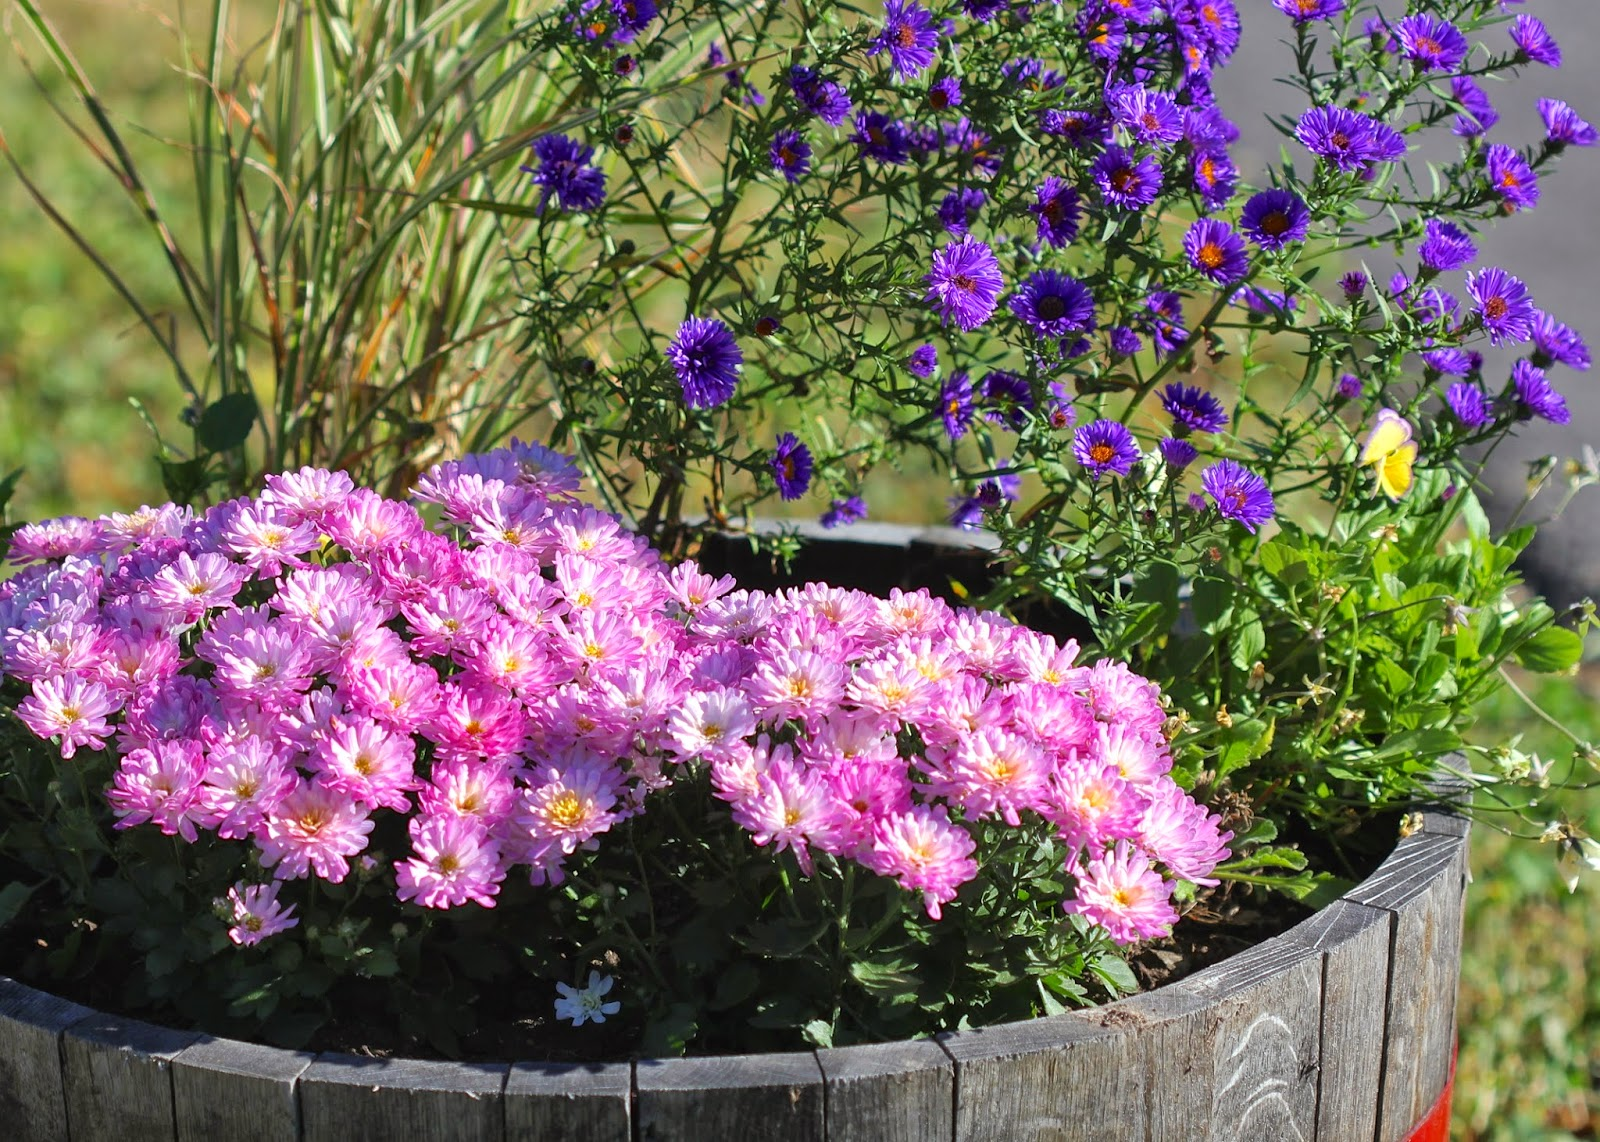 Red House Garden: The Curious Case of the Color Changing Chrysanthemums